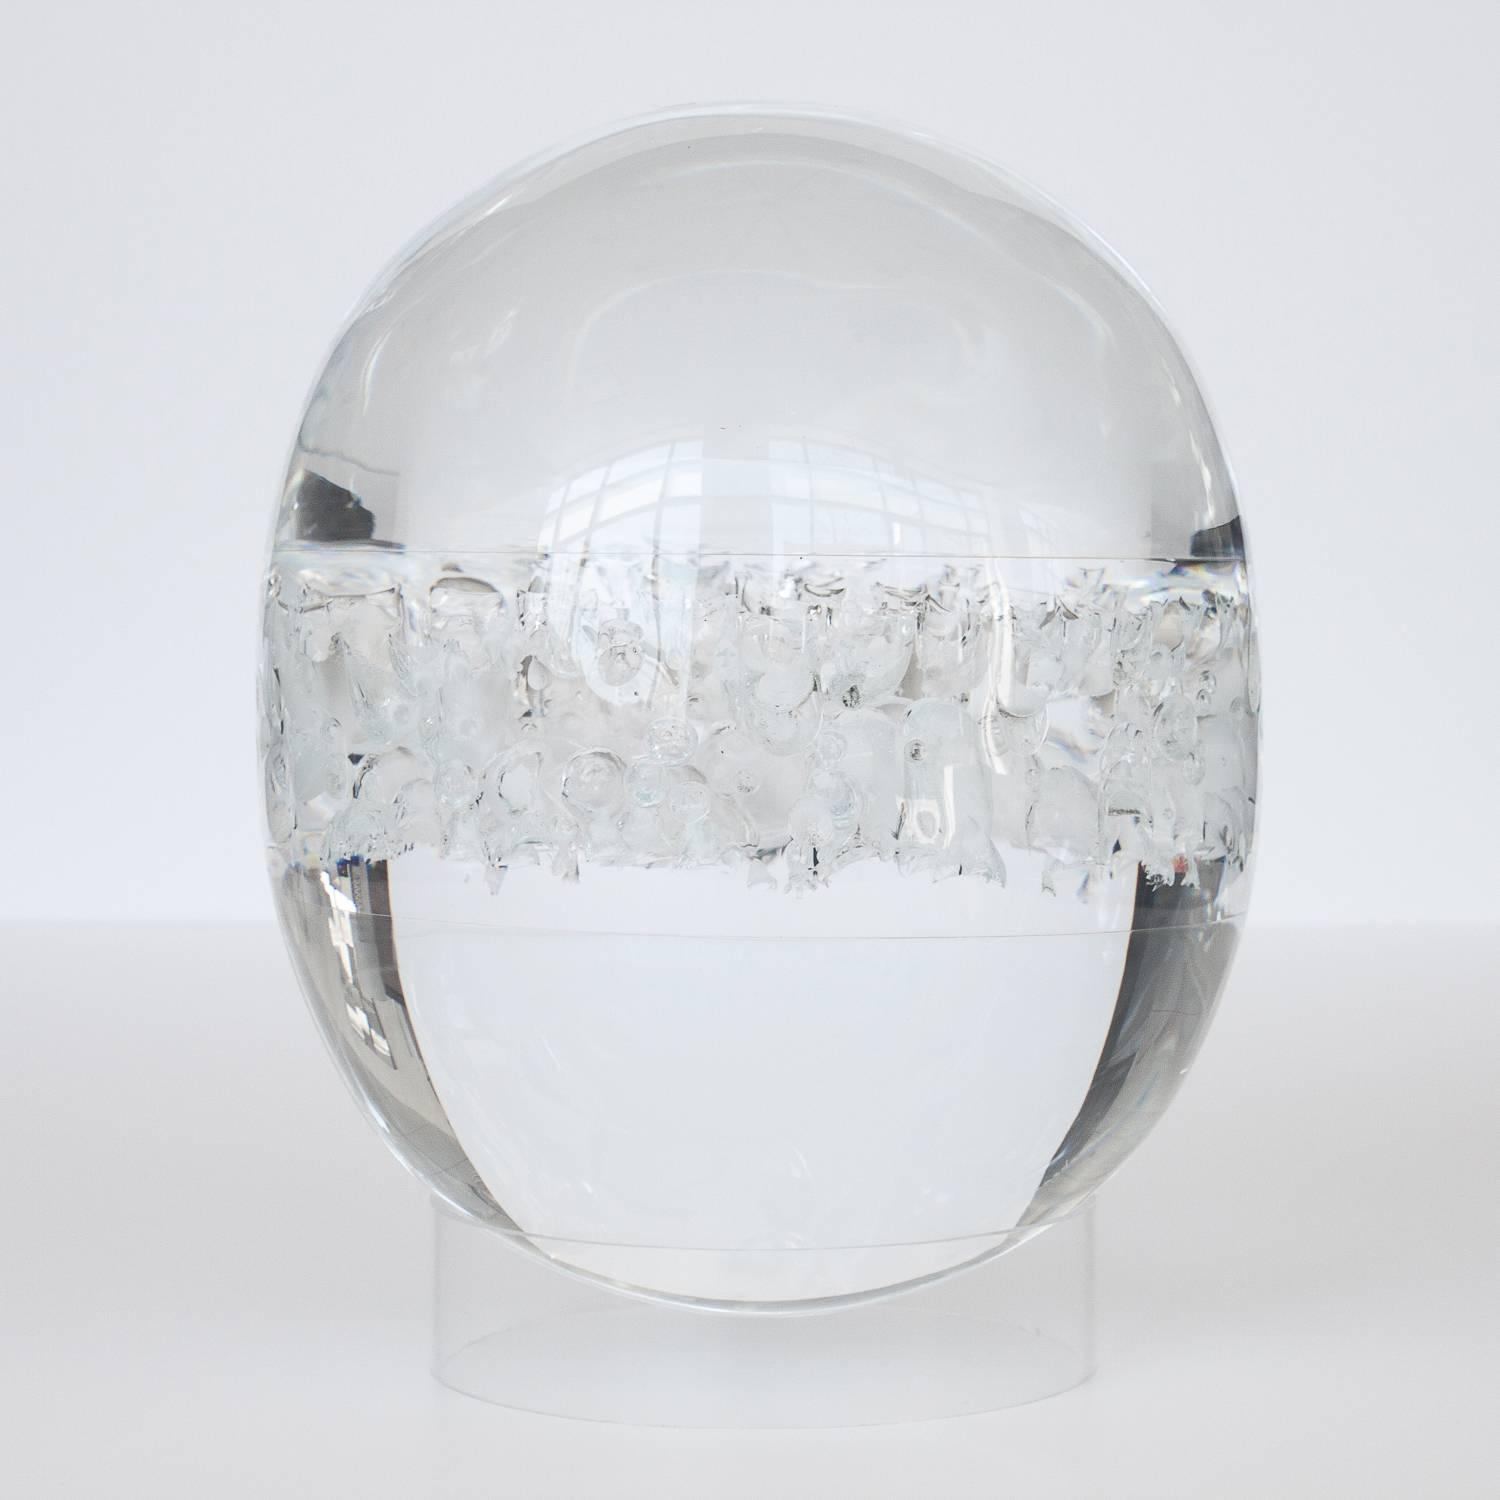 Optical Clear Lucite Bubble Sculpture At 1stdibs